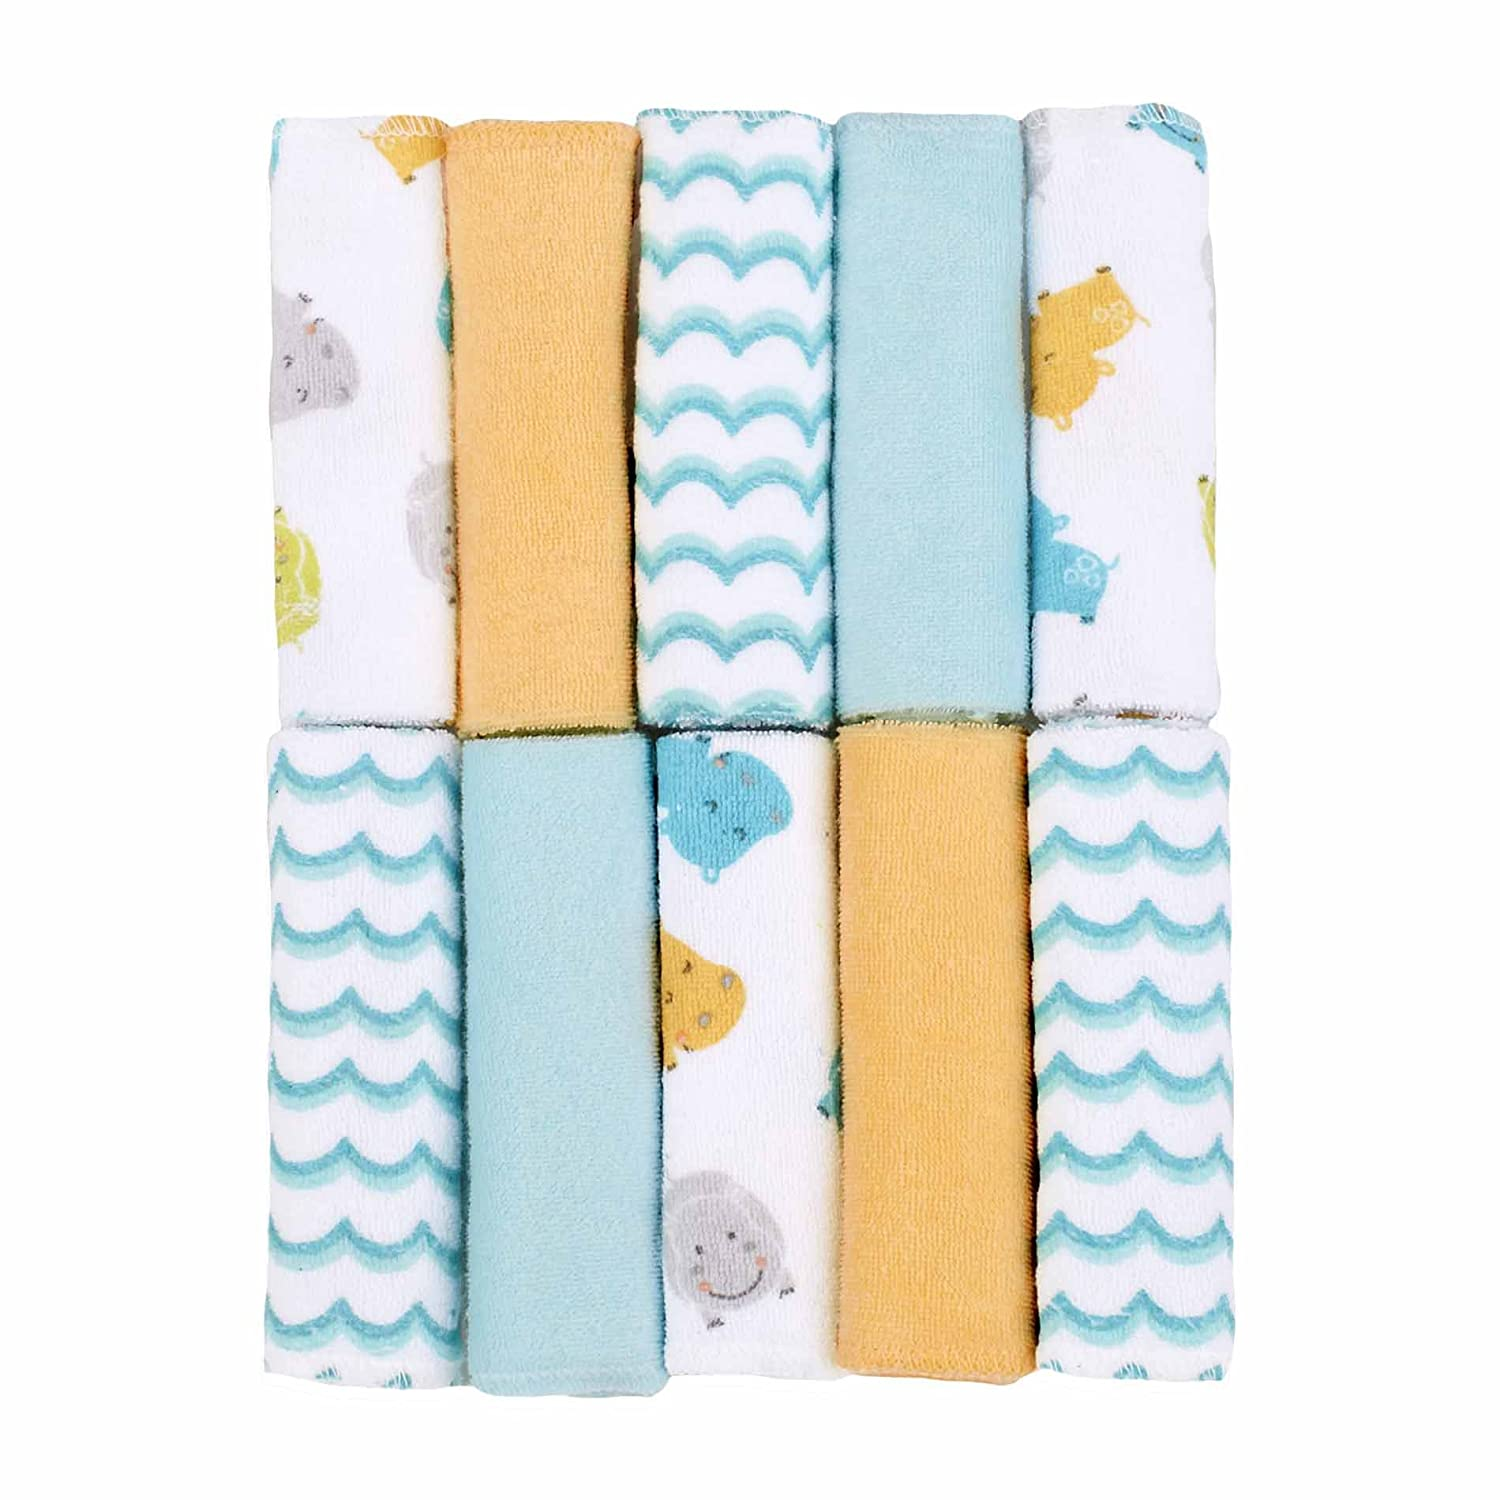 Crab//Blue Just Born Love to Bathe Woven Washcloth Set 10 Count